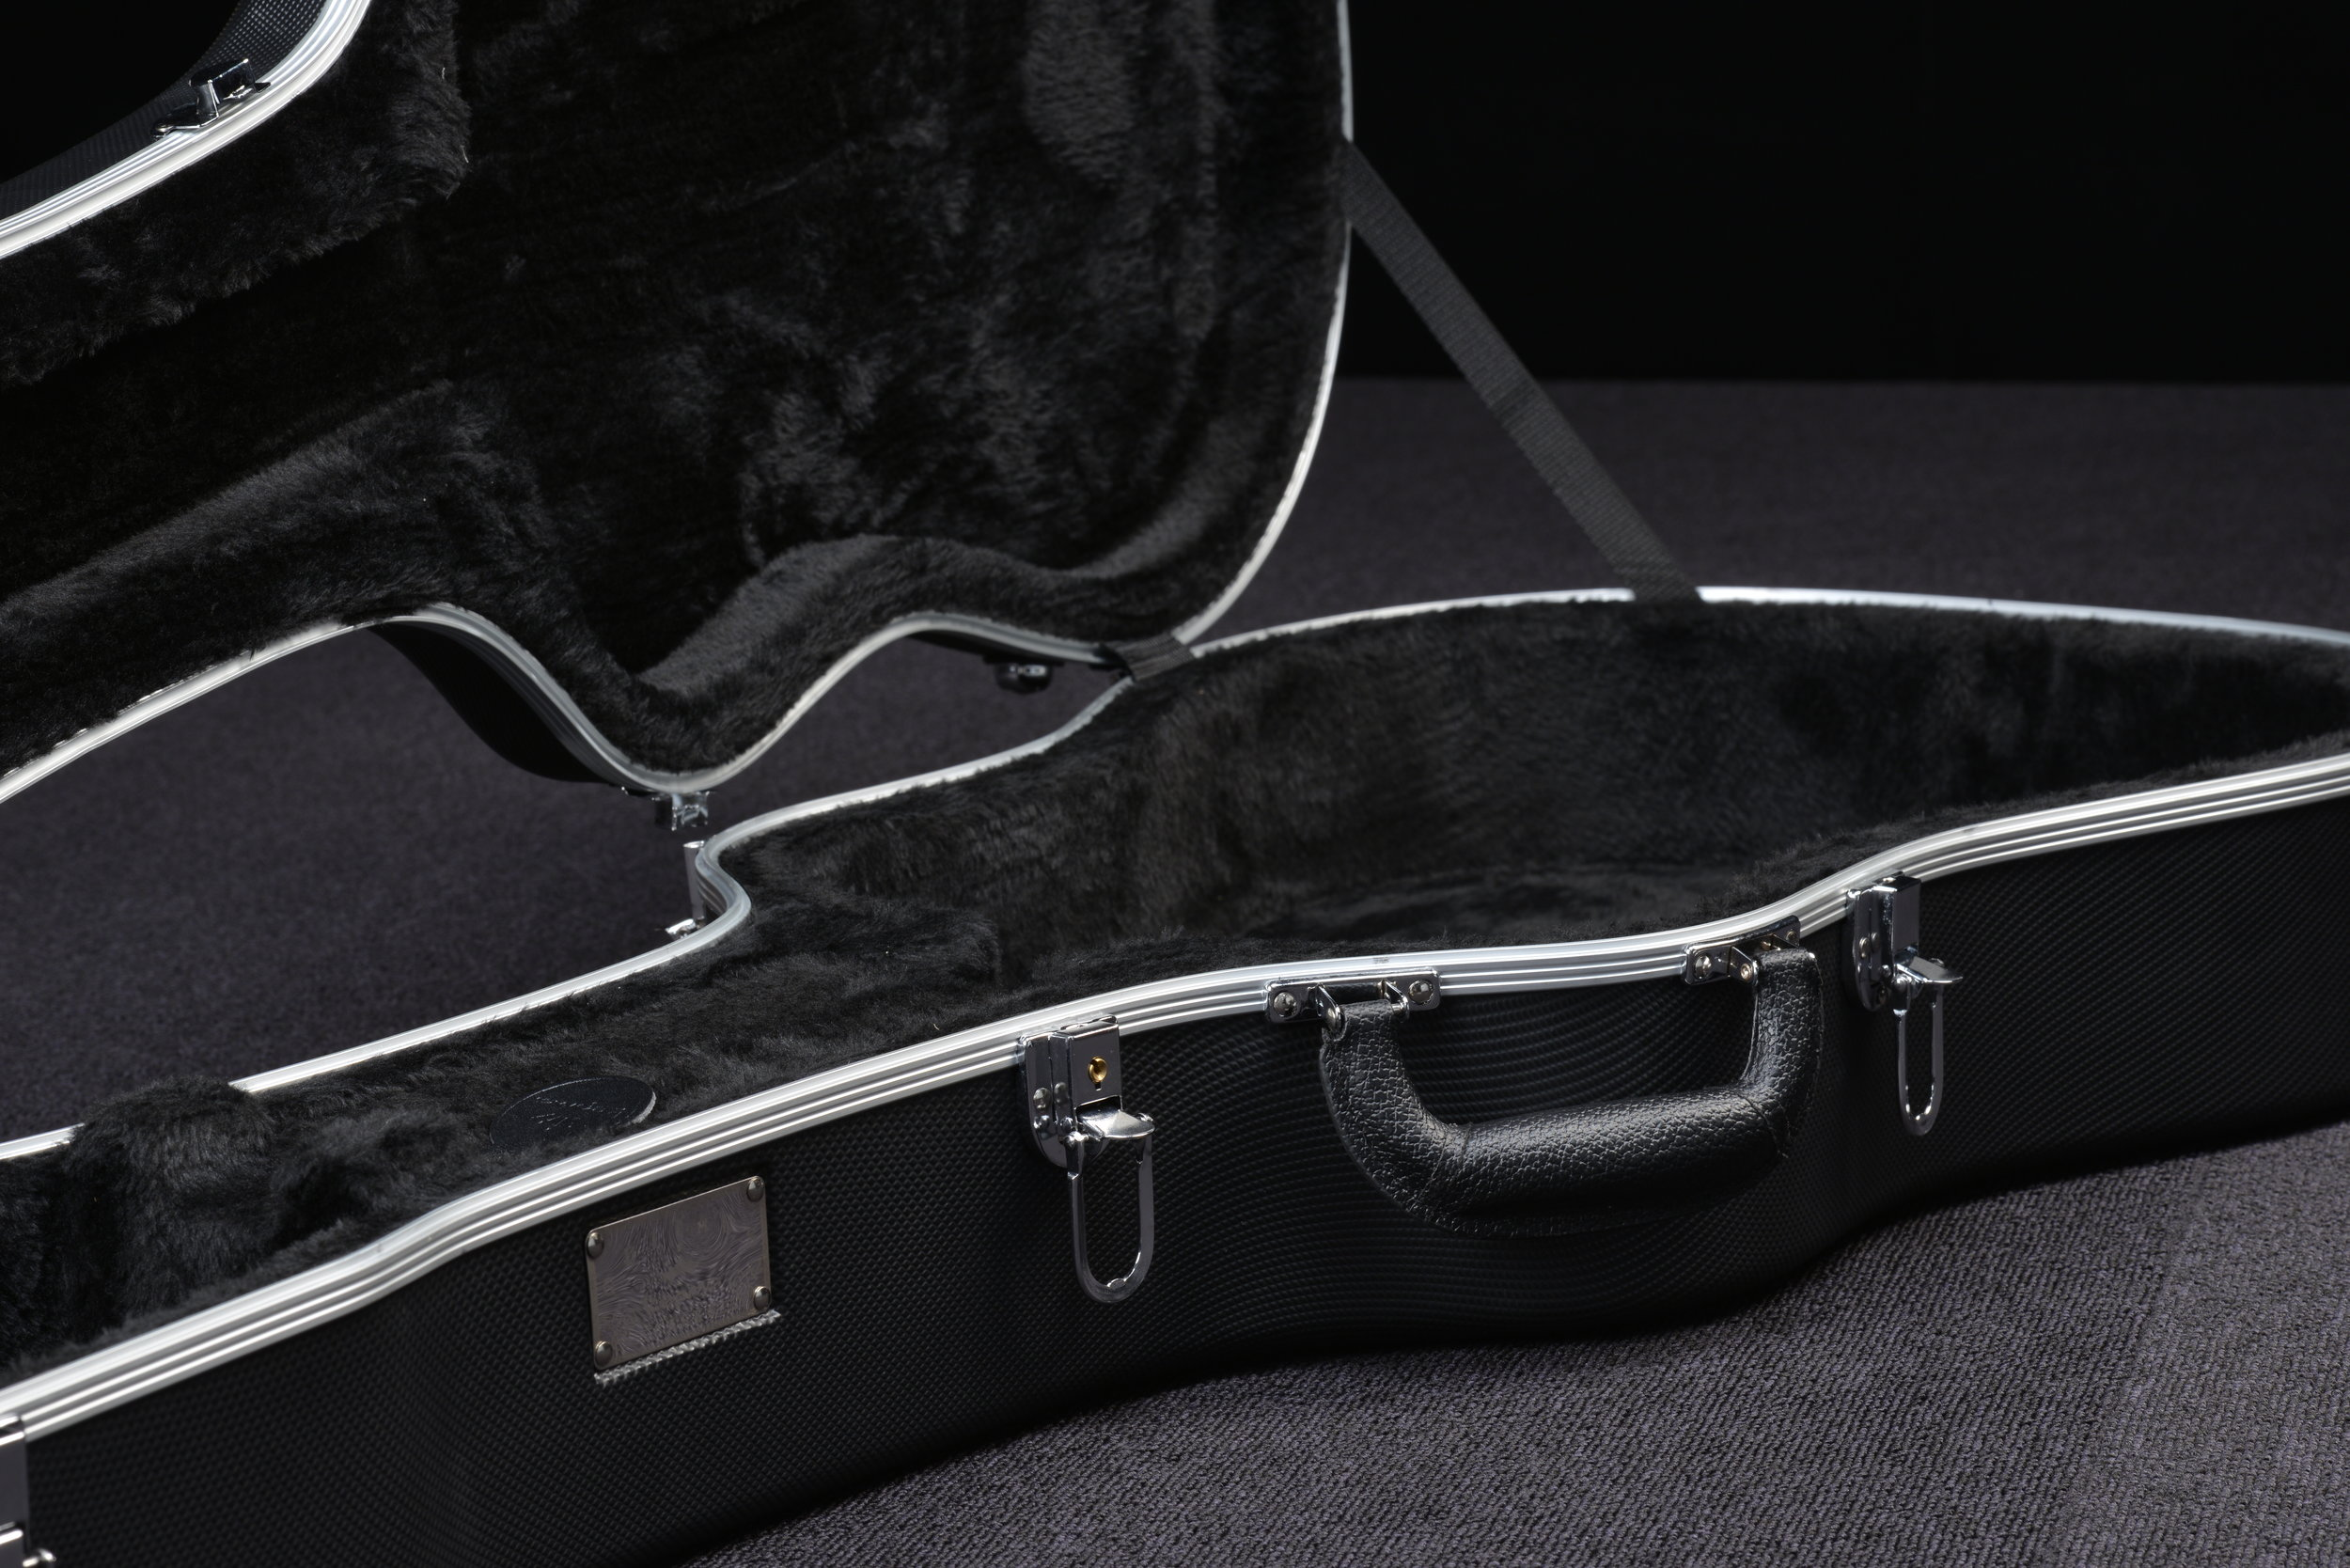 Deluxe hard shell ABS case is included with every D2-120 guitar.